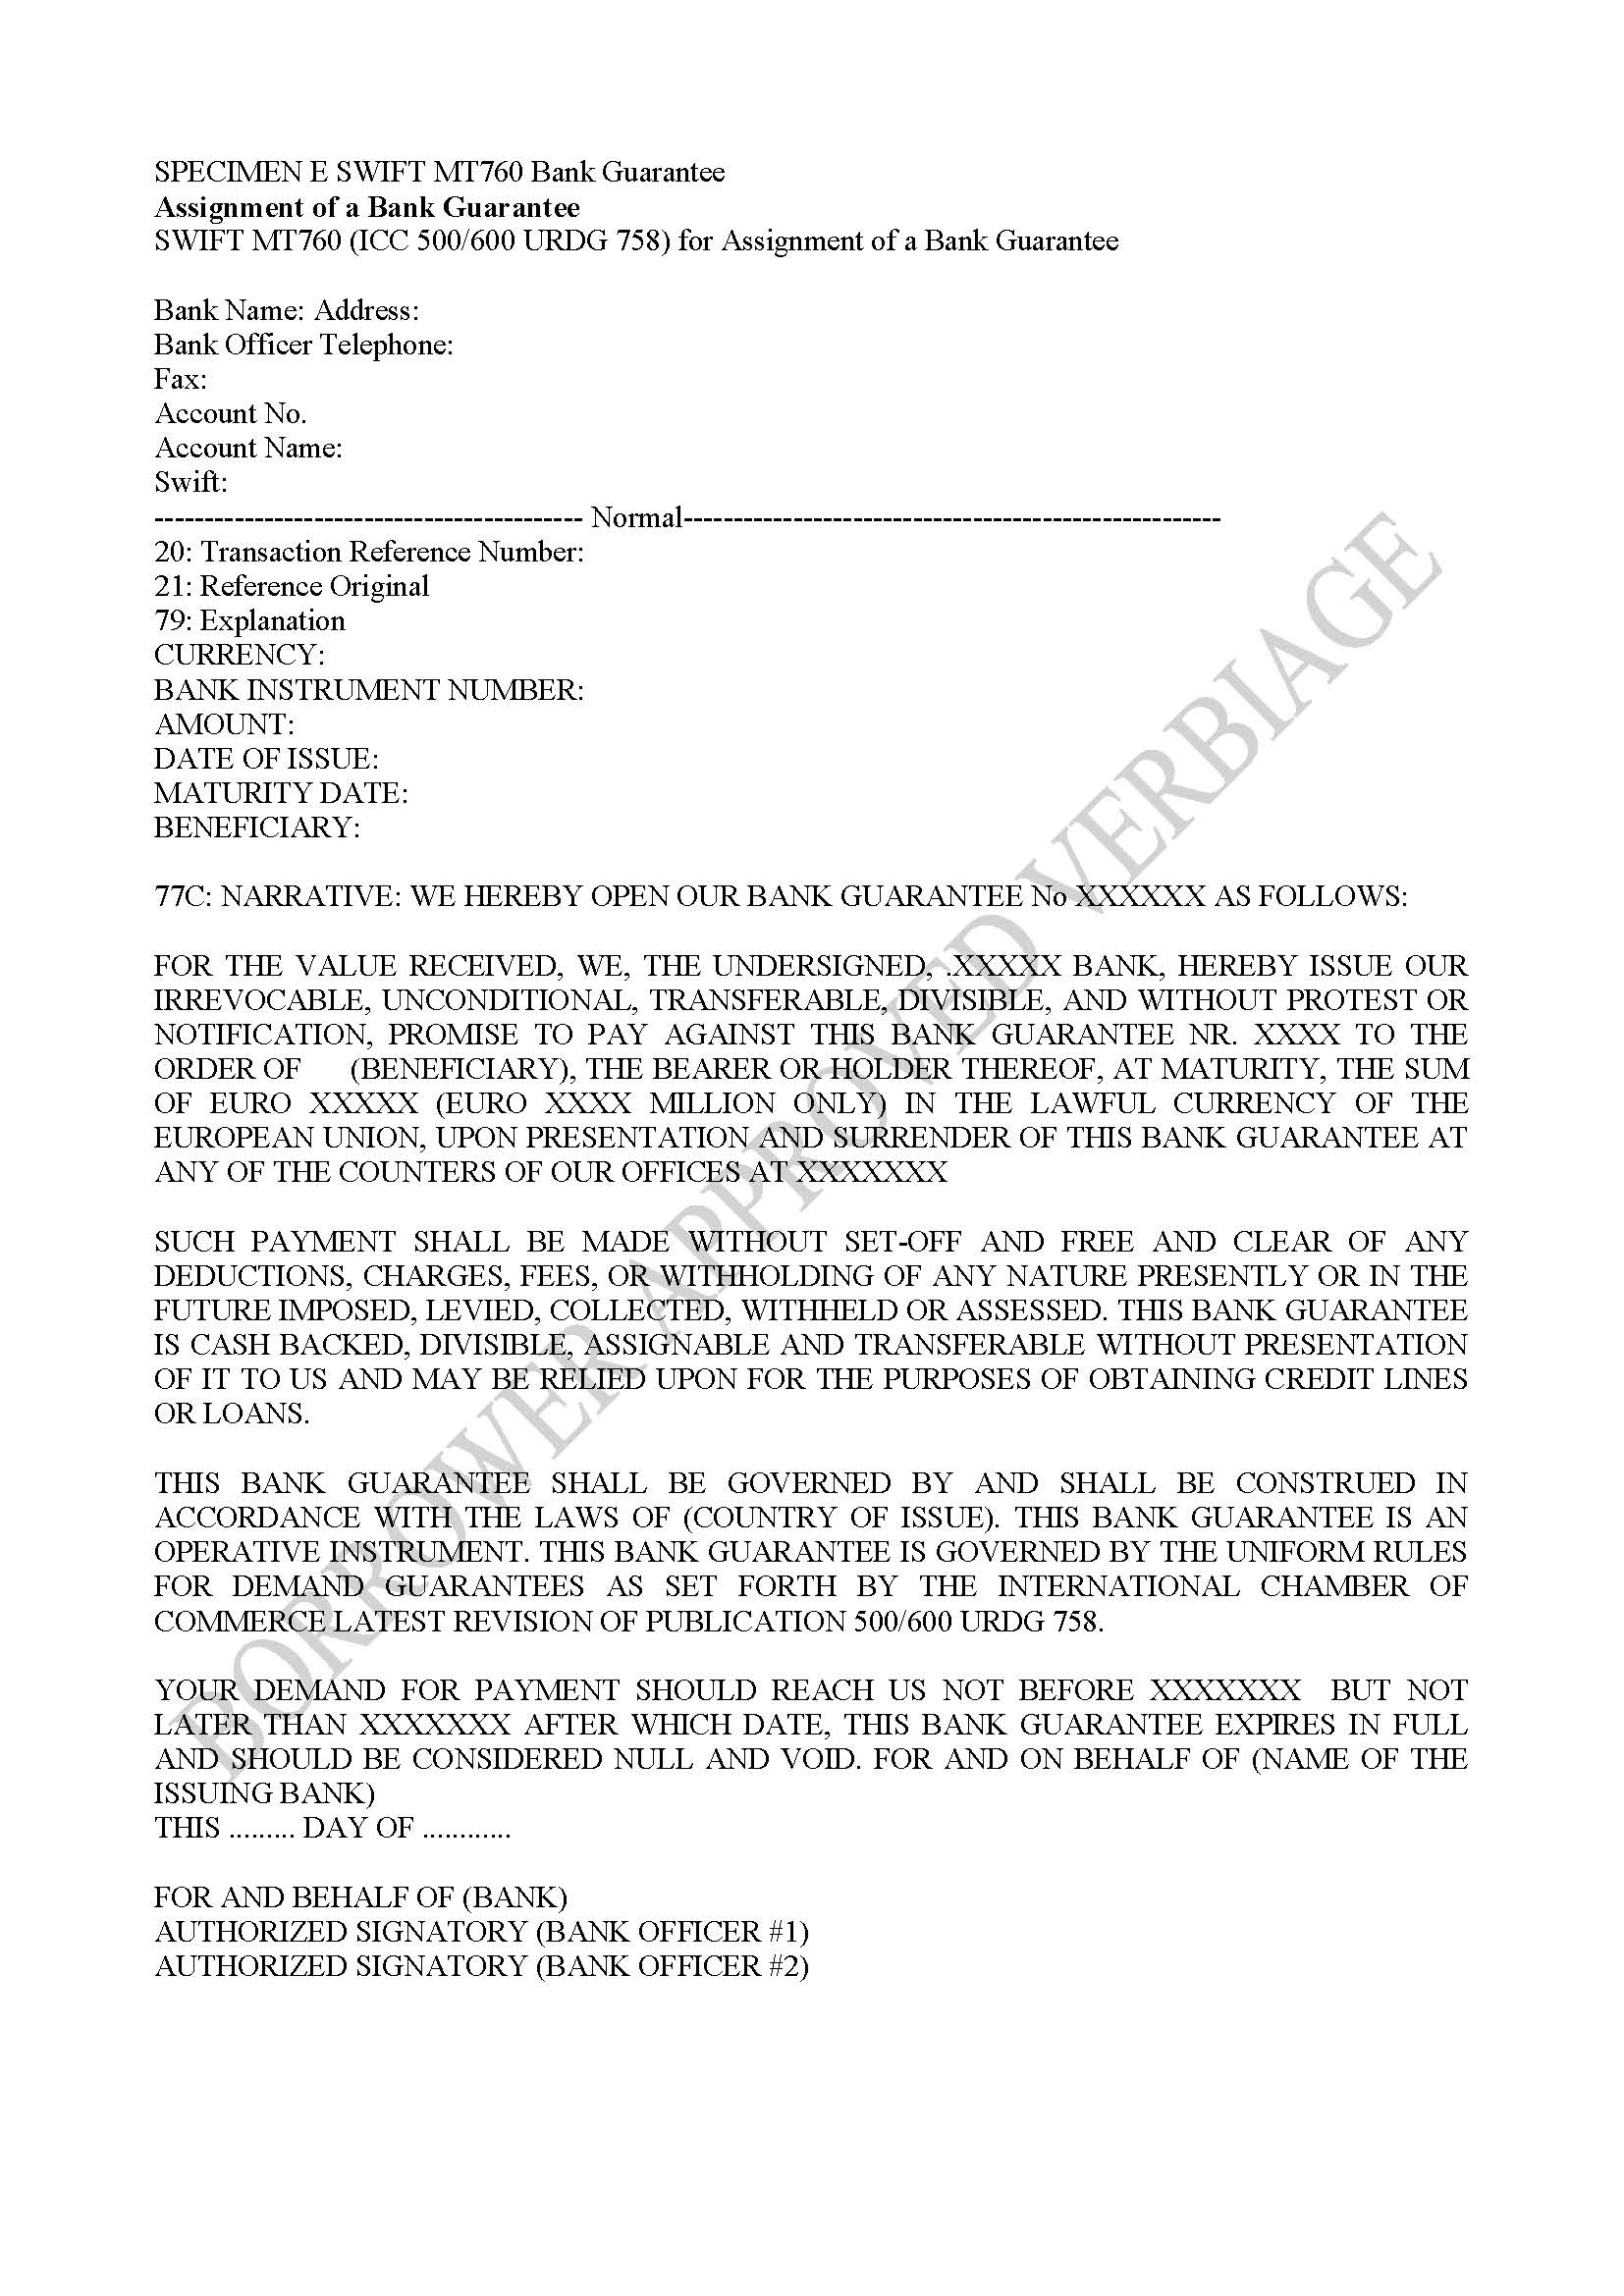 BUSINESS SUPPORT CONTRACT (ALL SPECIMEN)_Seite_5